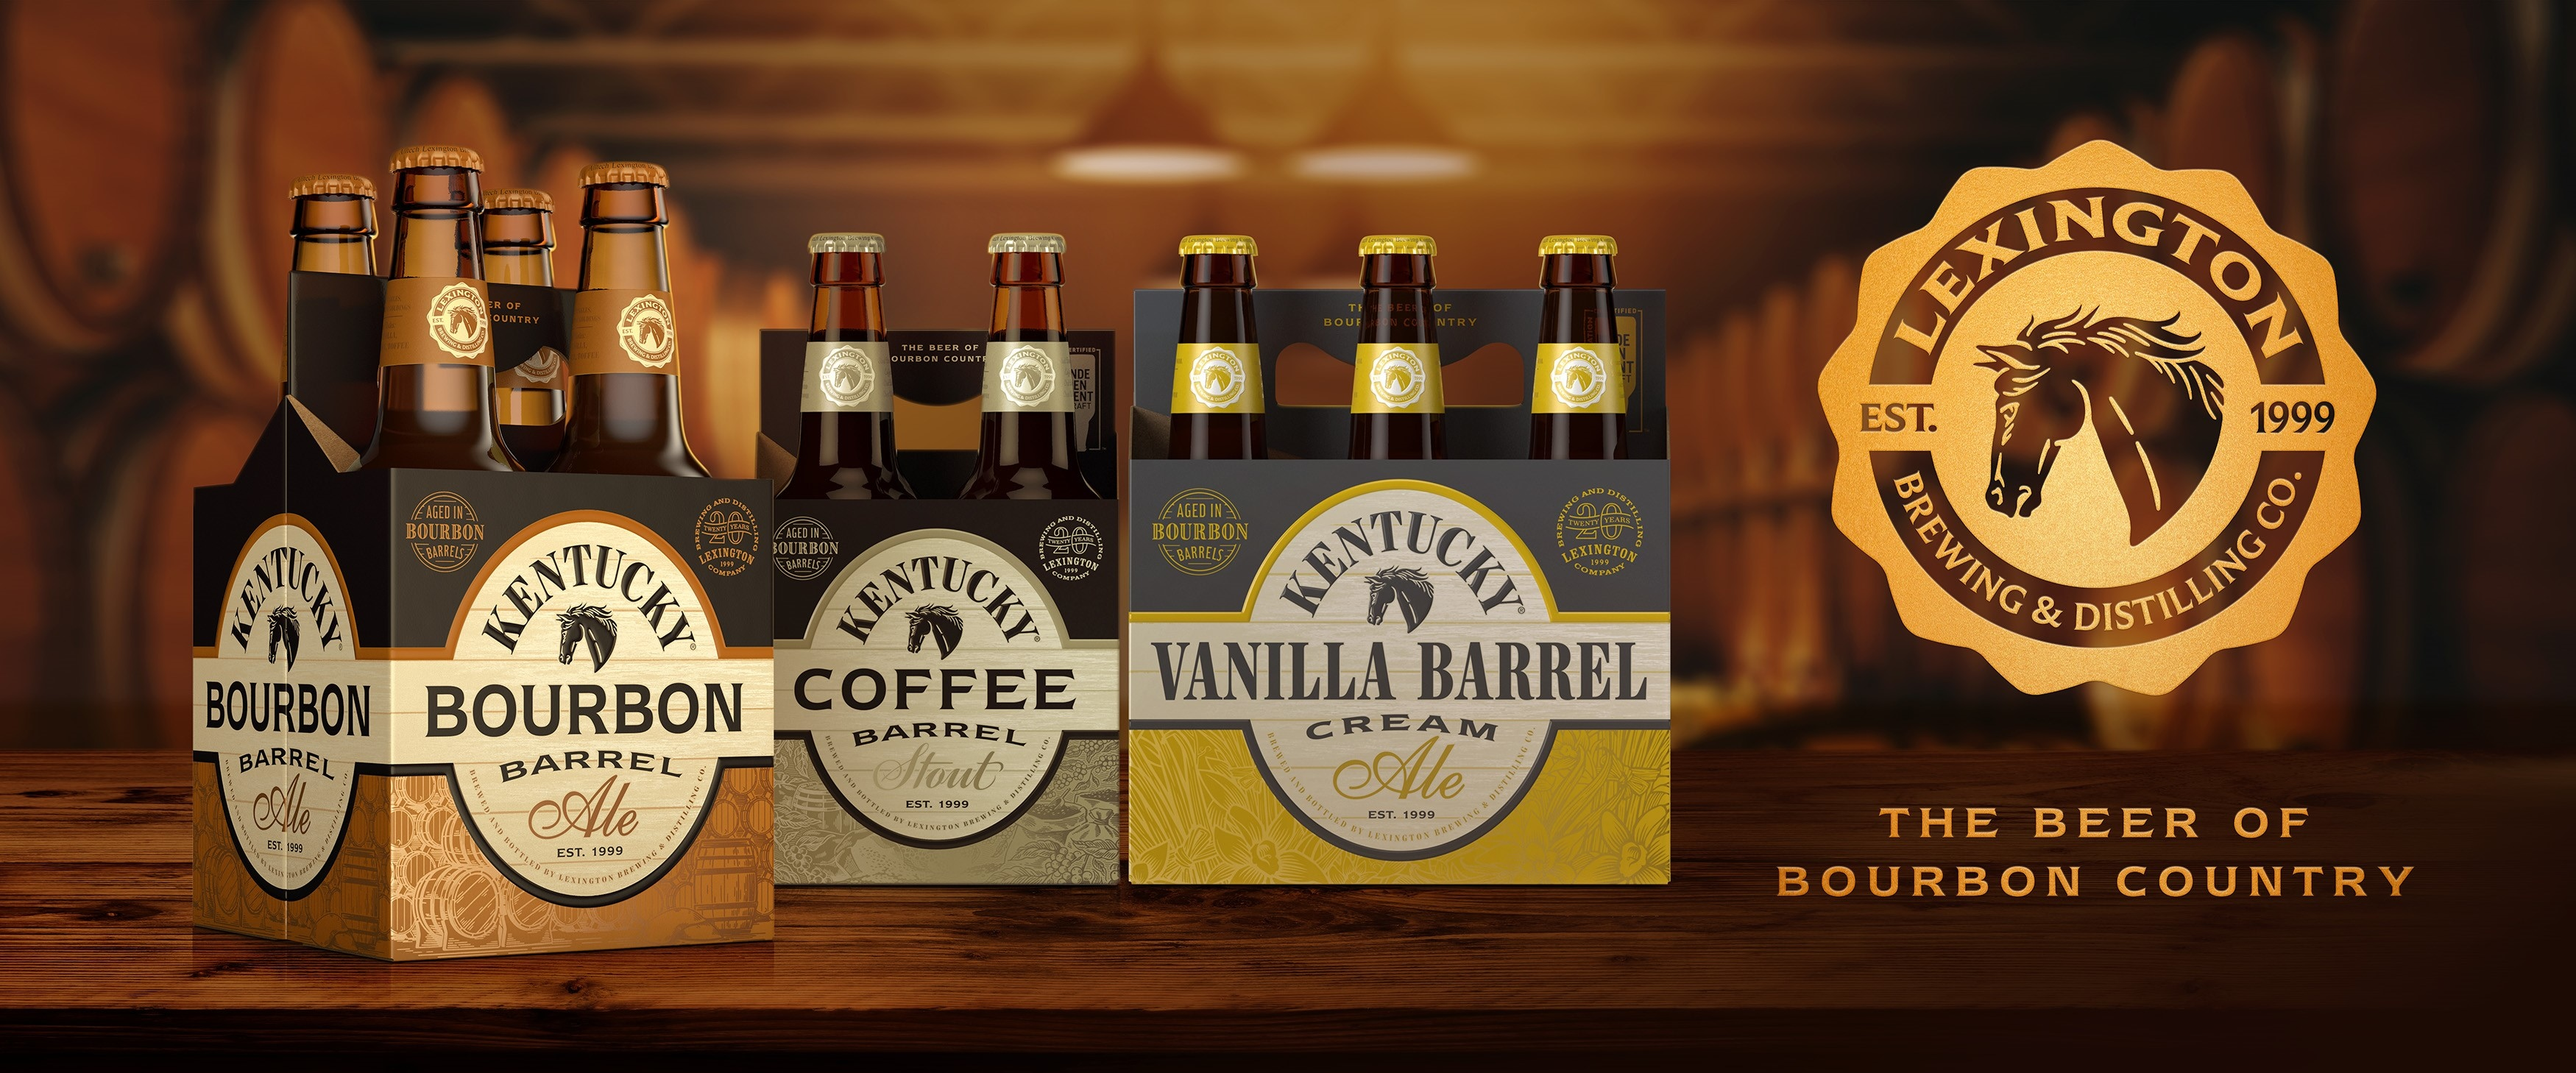 Lexington Brewing & Distilling Co. Redesigns Packaging For 20th Anniversary photo